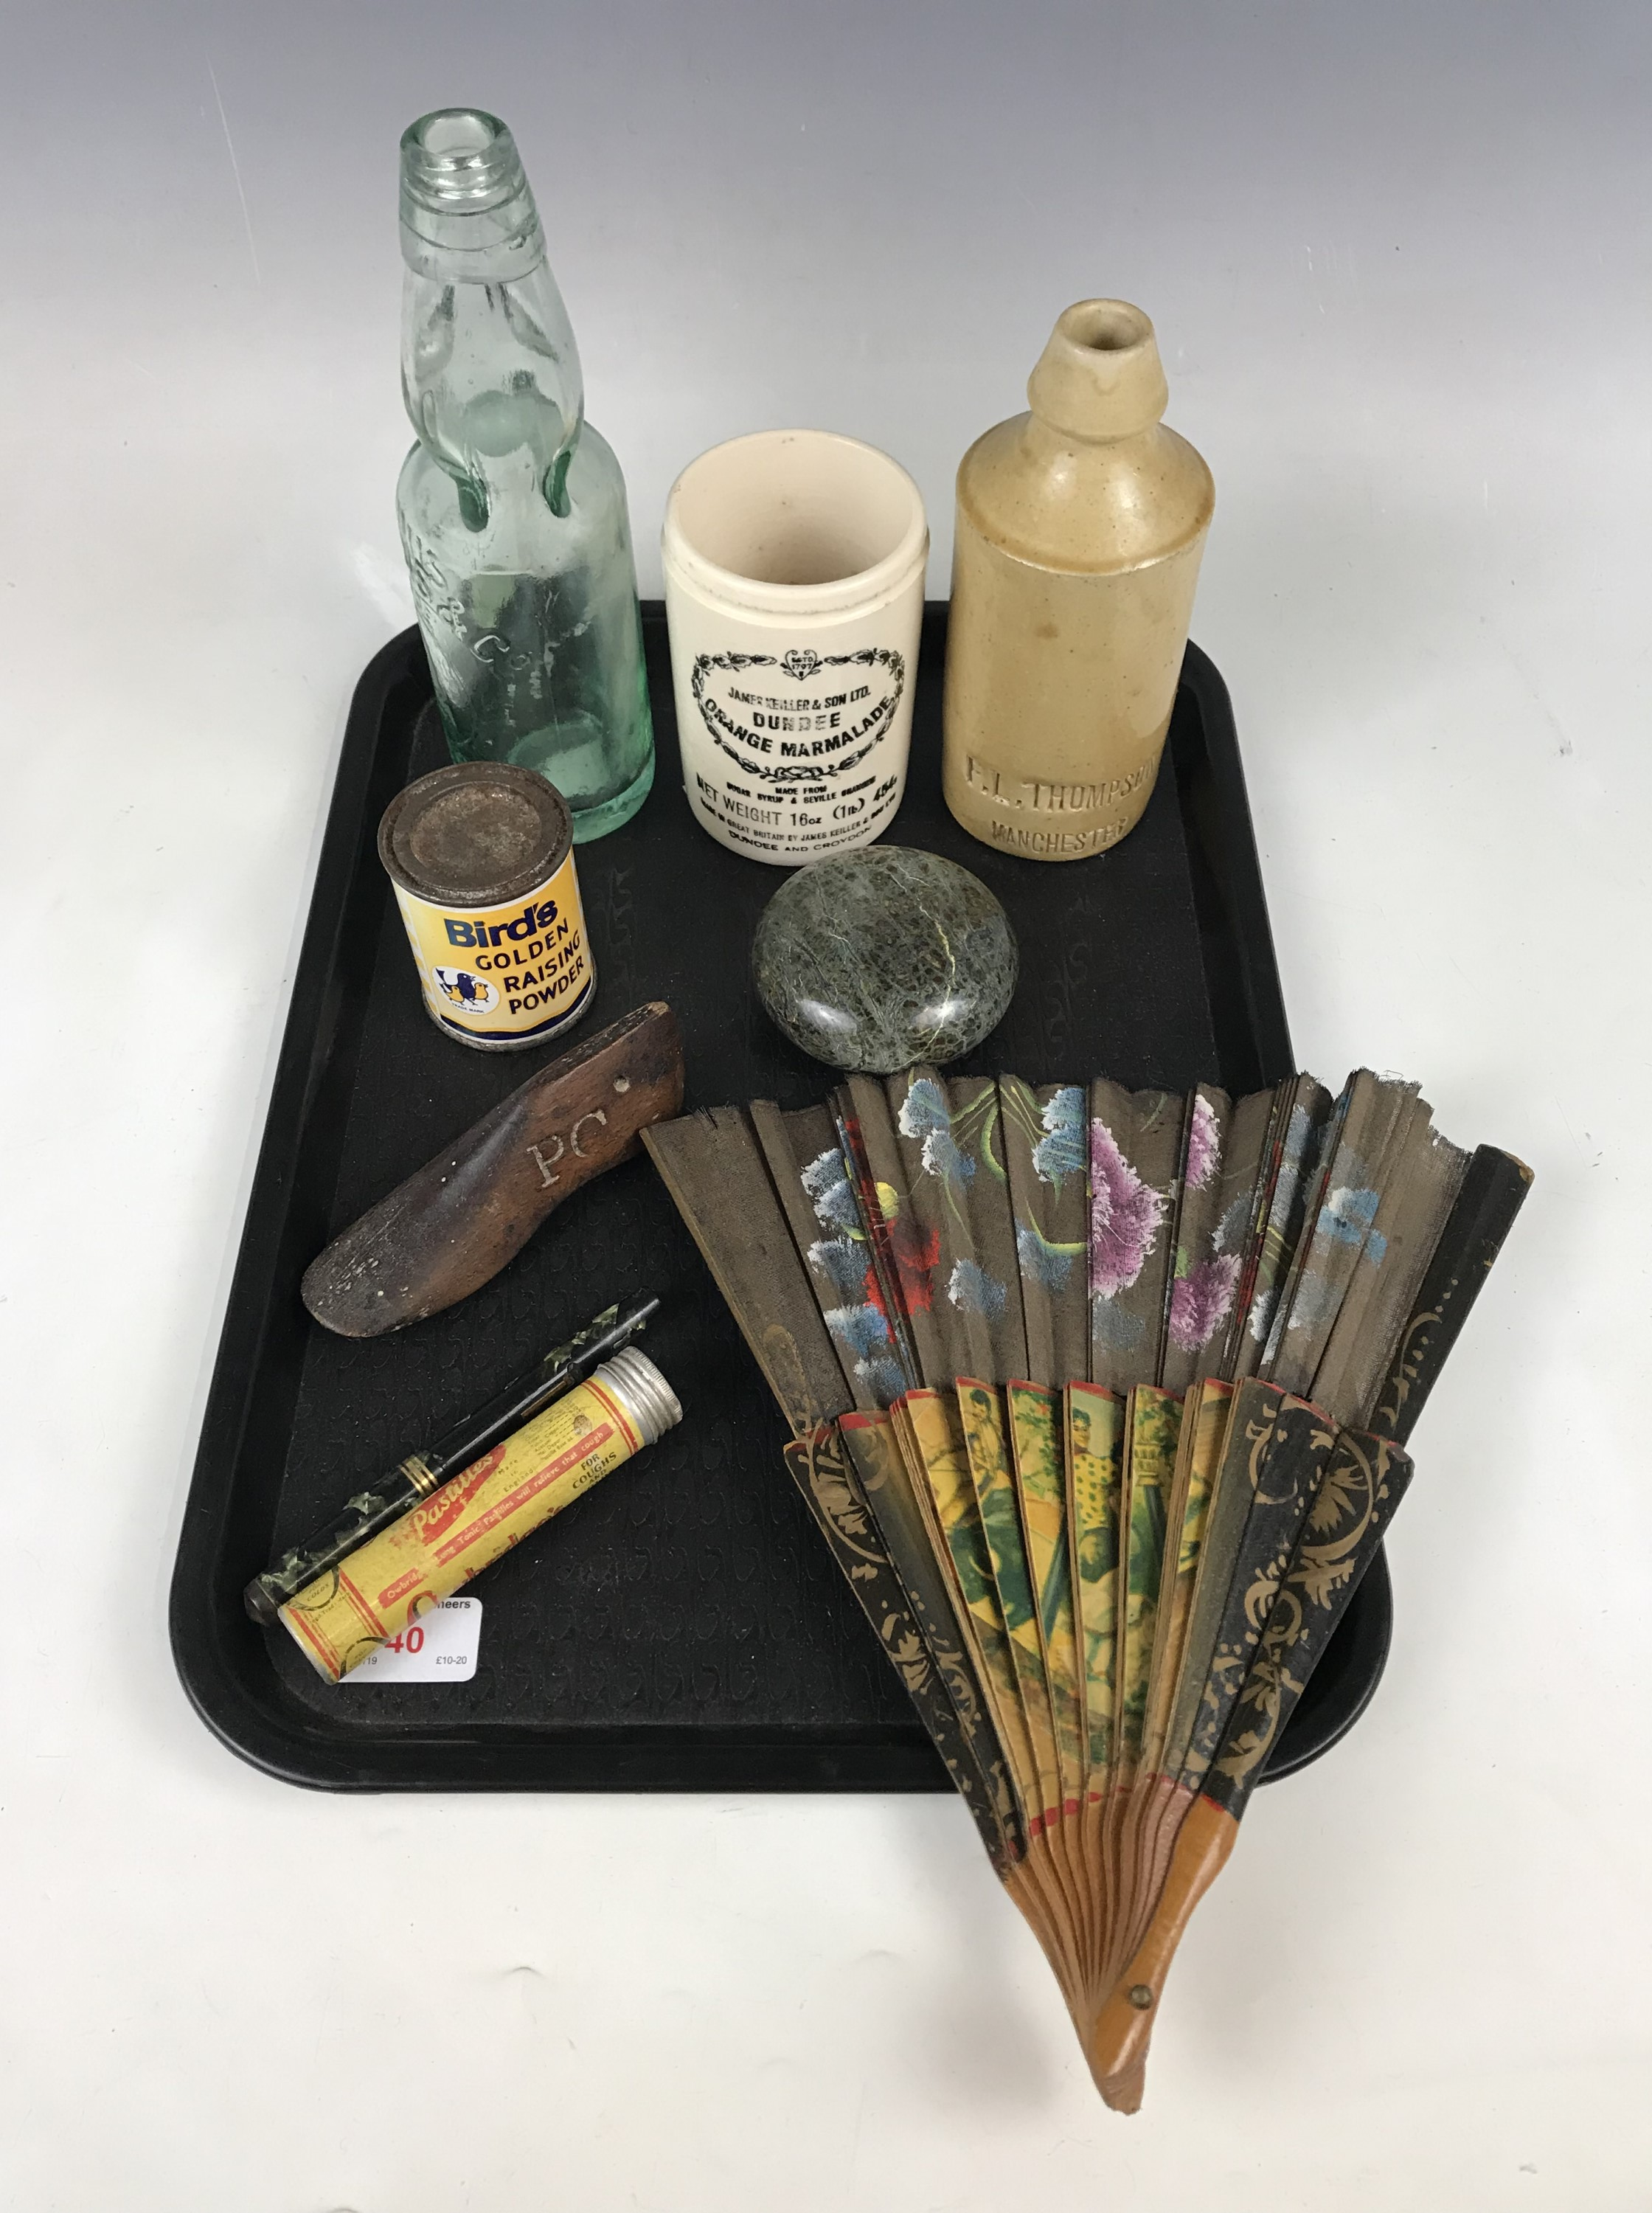 Lot 40 - Sundry collectors' items including a stoneware bottle, a fan, a fountain pen and a Victorian child's